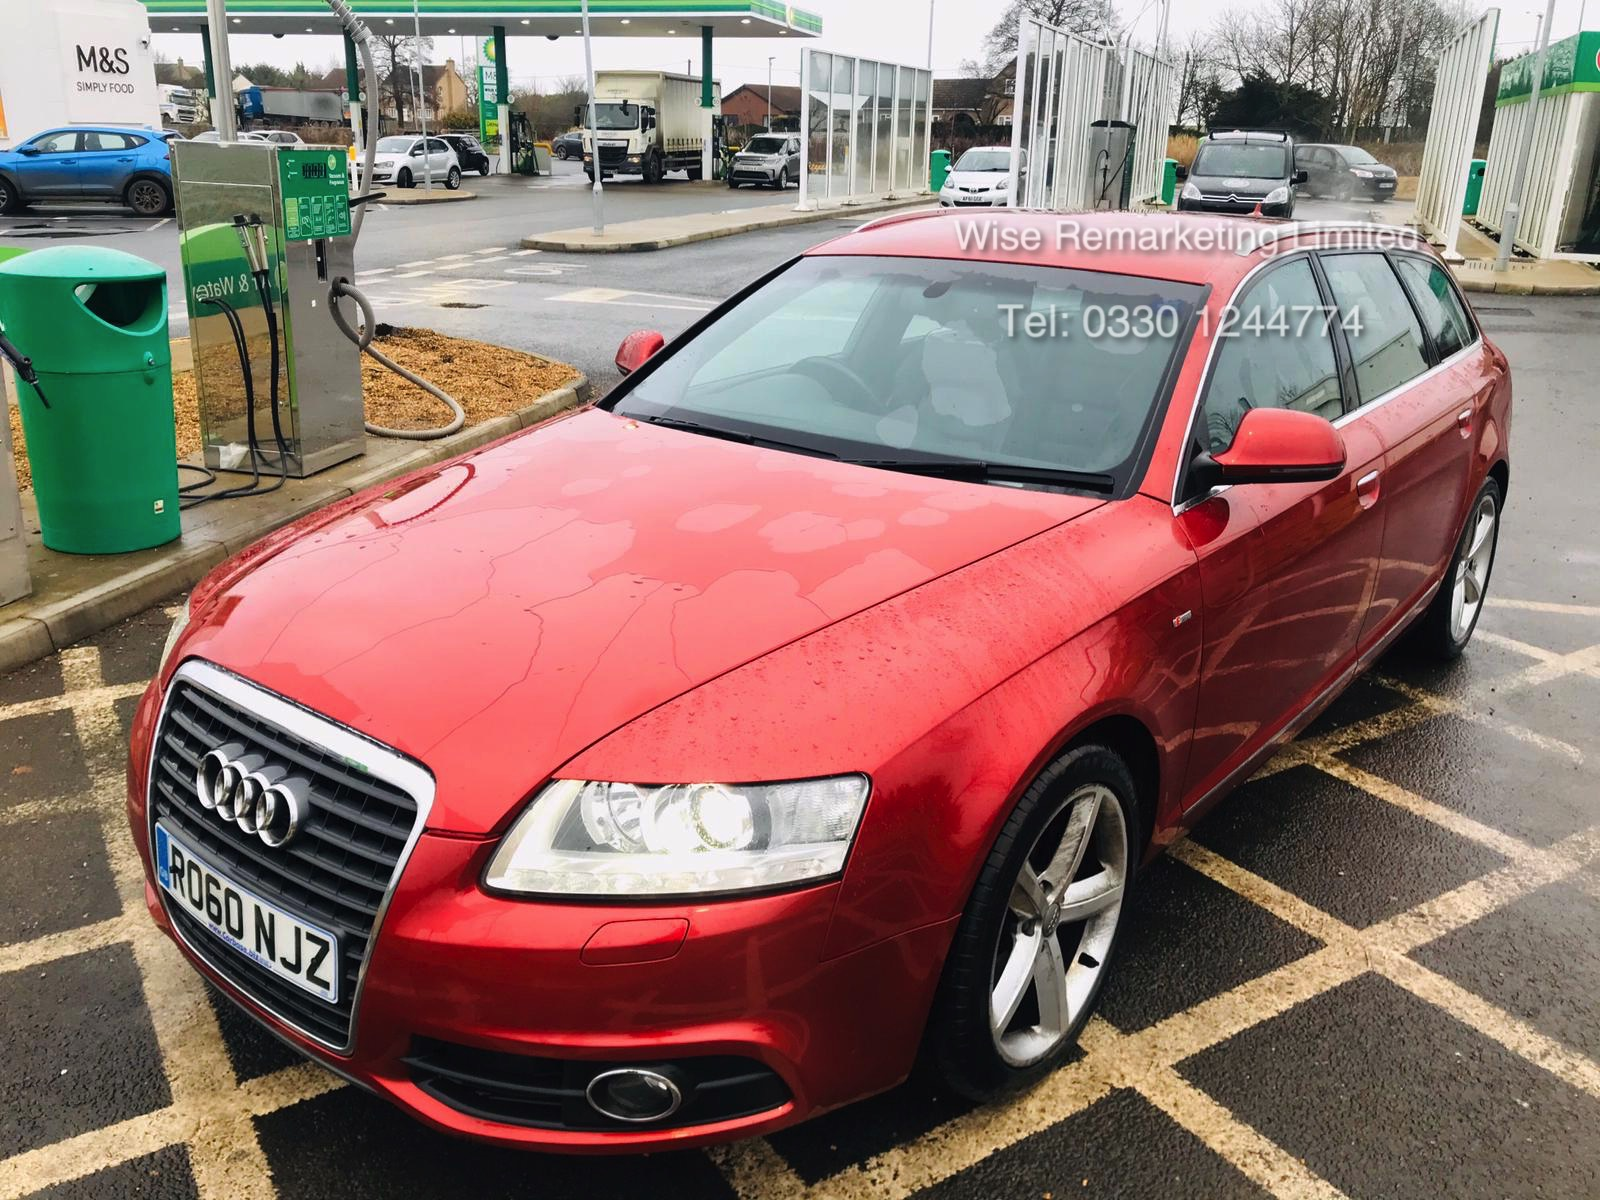 Audi A6 2.0 TDI S Line - 2011 Model - Full leather - Sat Nav - Image 3 of 21